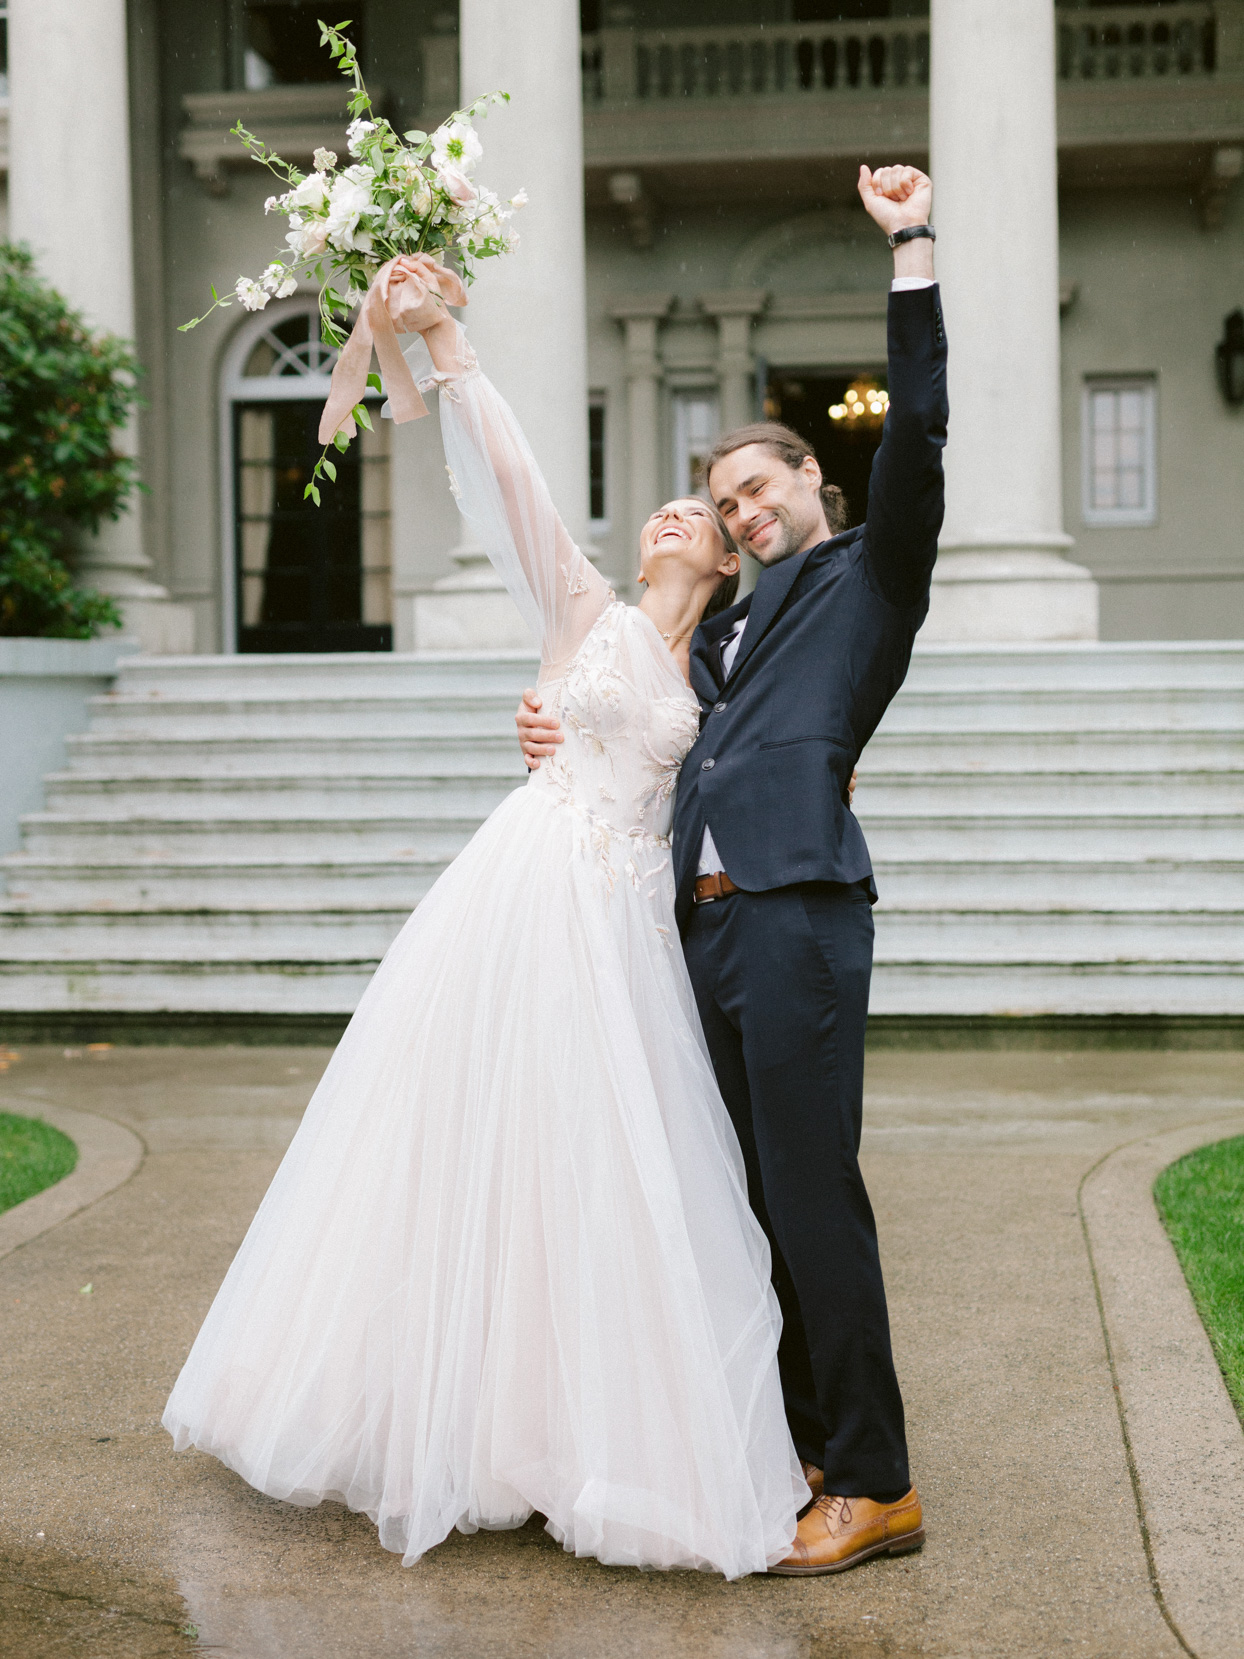 wedding couple raising hands in expression of joy